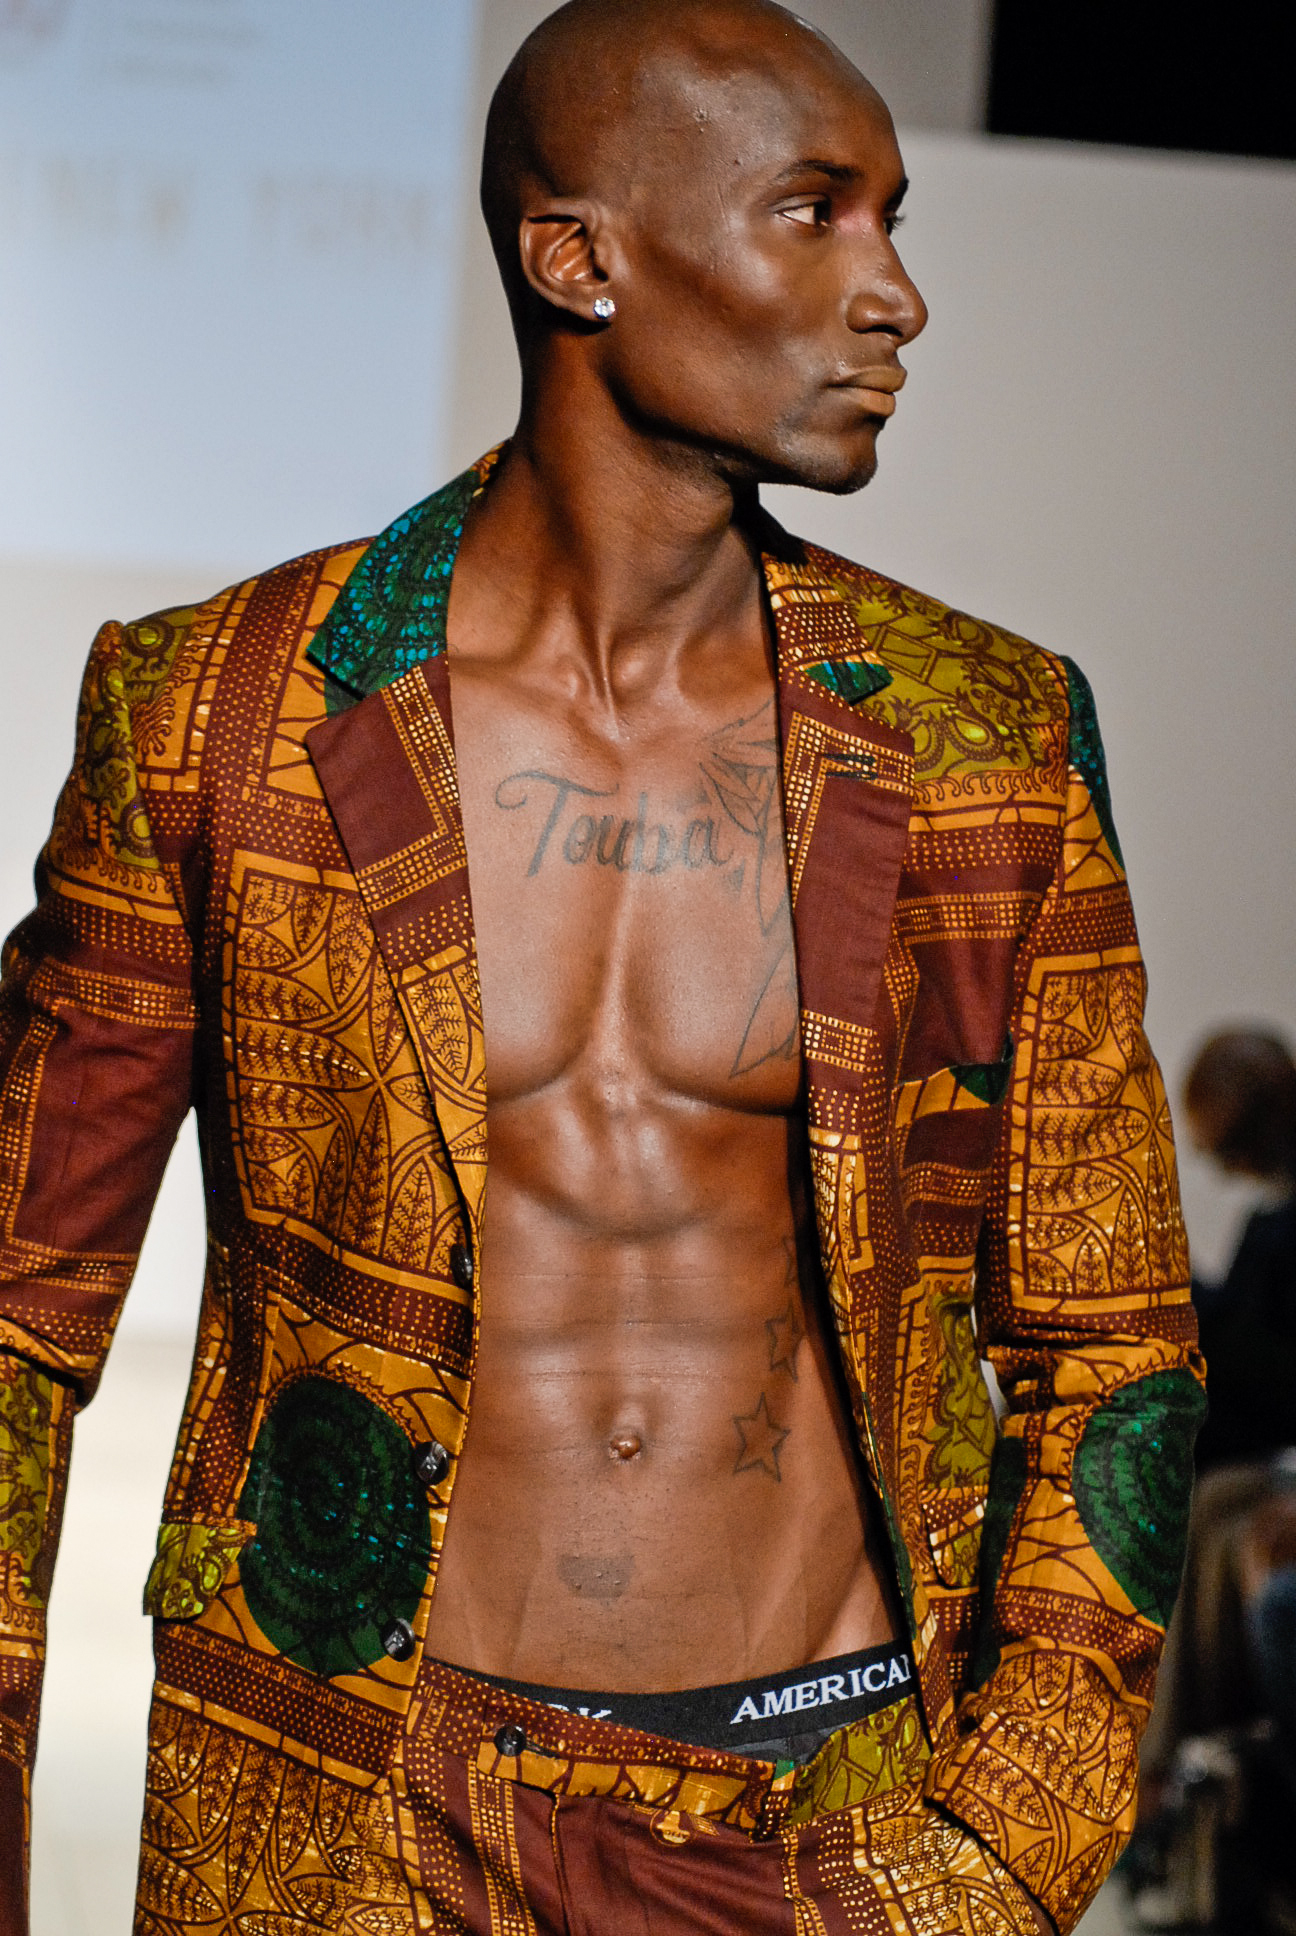 Kibonen-at-Africa-Fashion-Week-in-New-York-AFWNY-2012-4 (2)